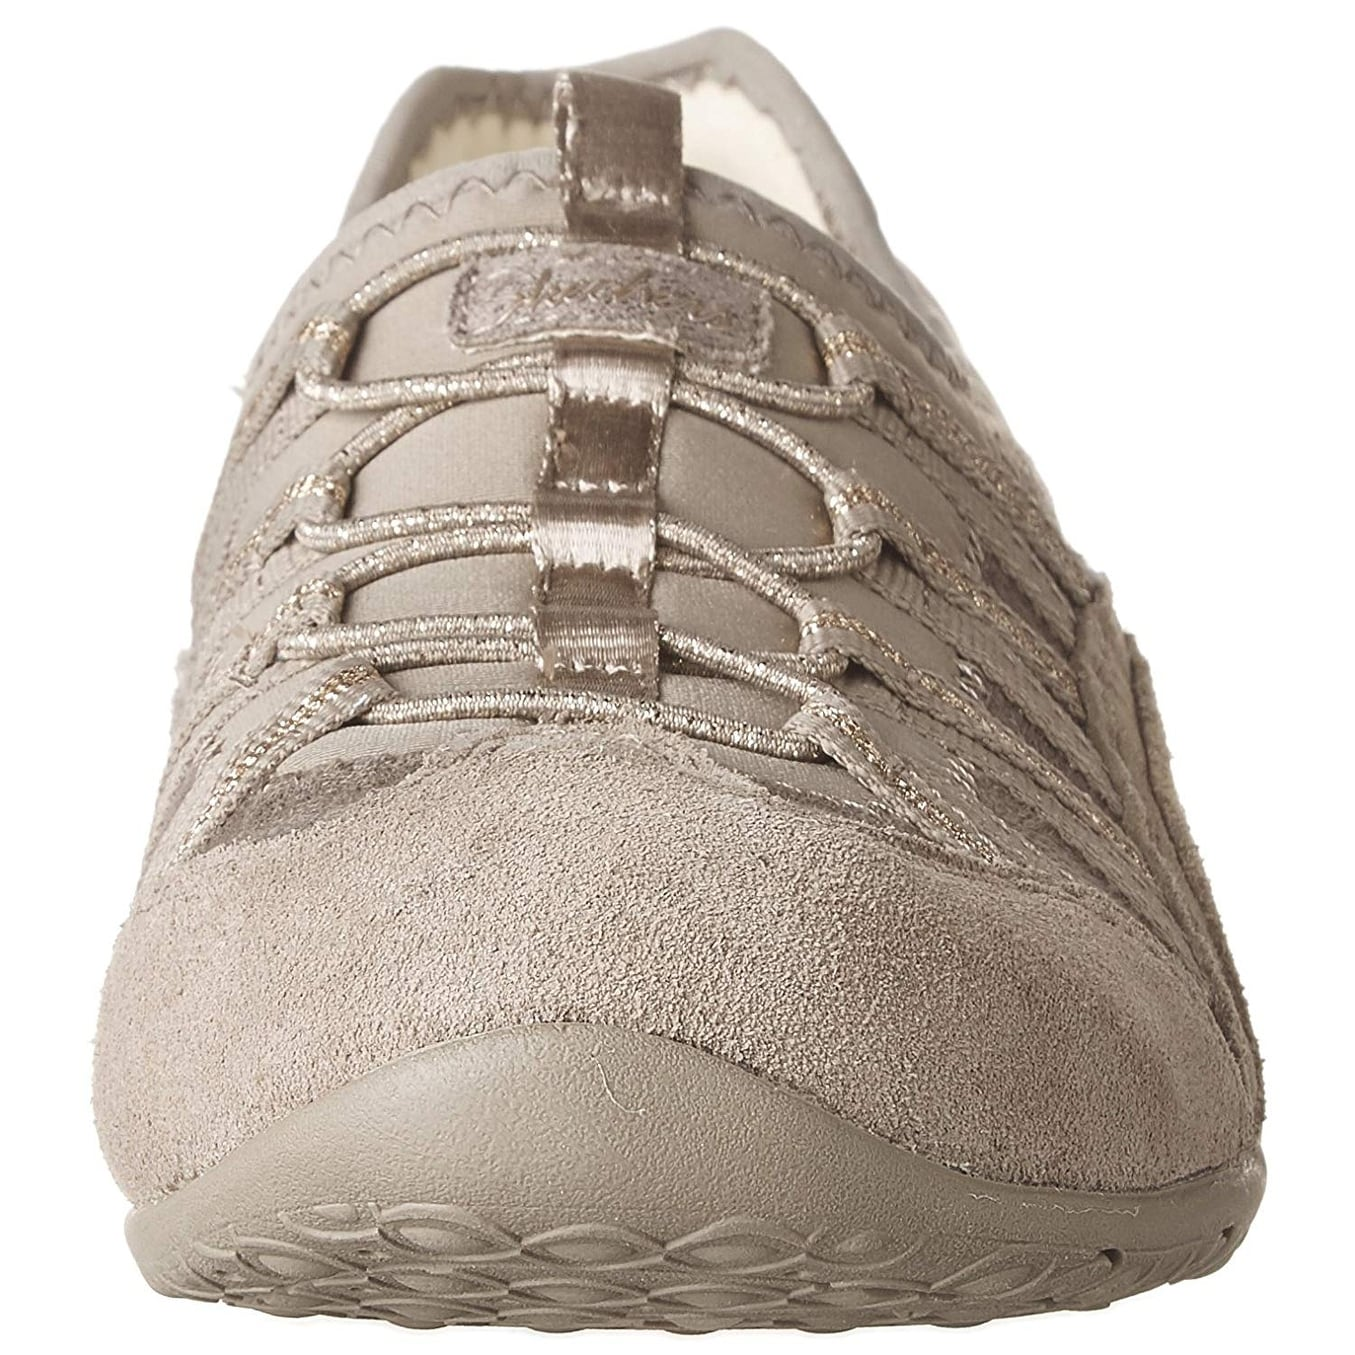 c318587599bc4 Skechers Unity Beaming Womens Slip On Sneakers Taupe/Gold 8.5